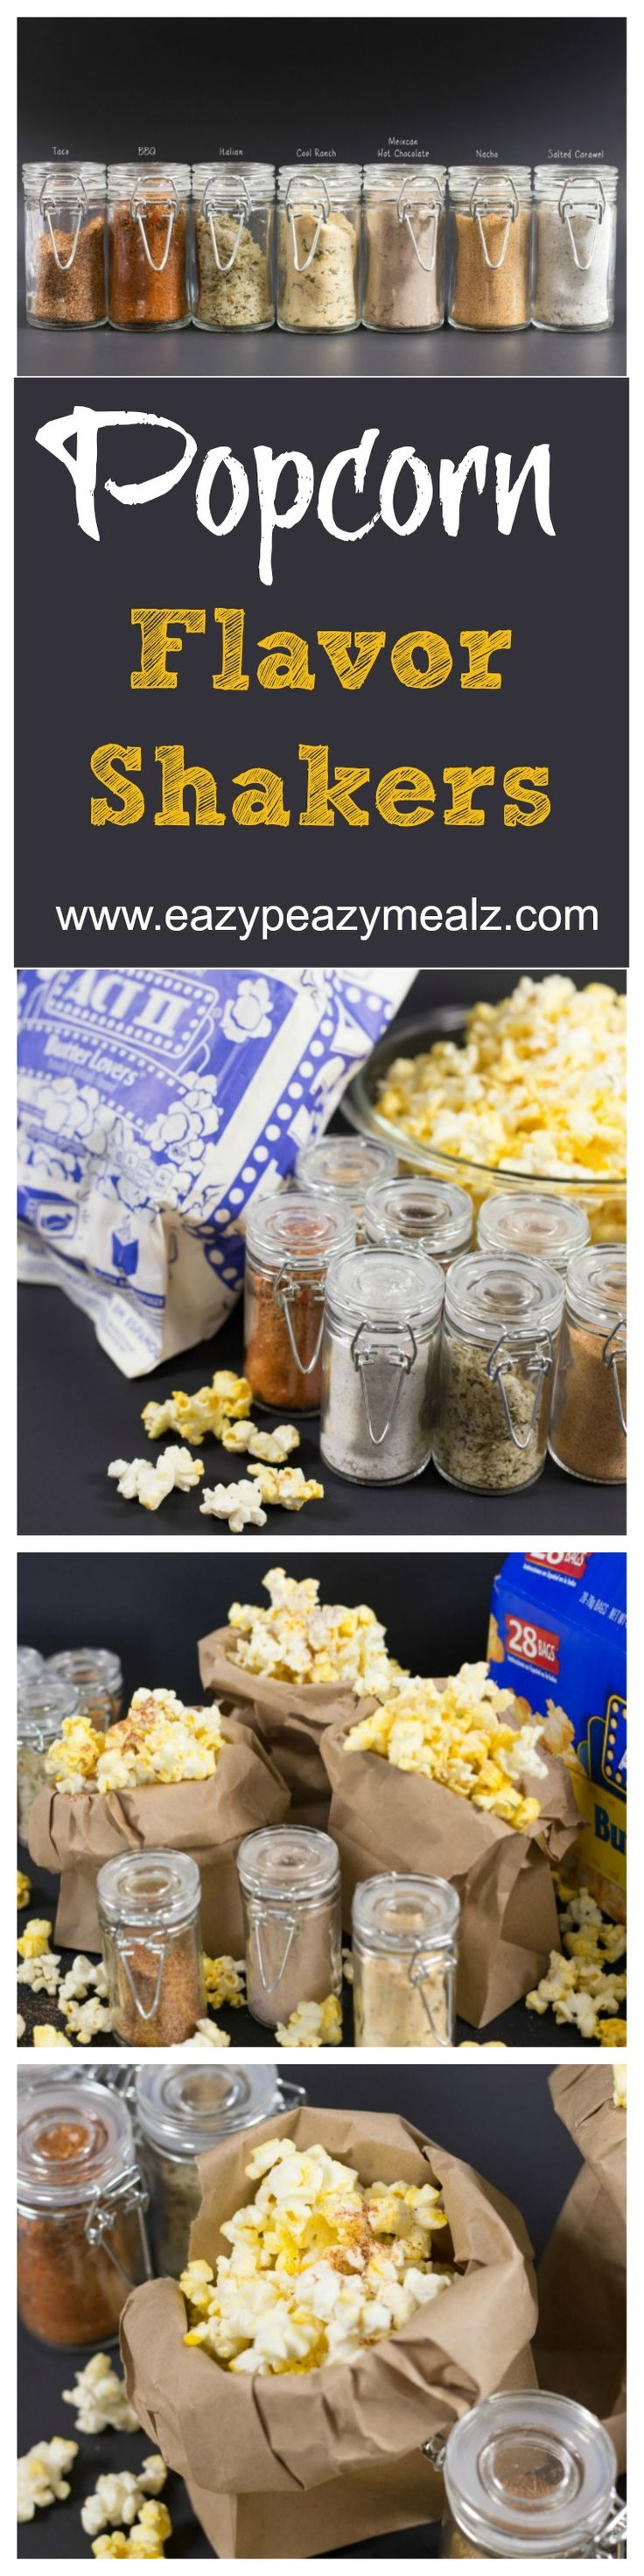 Popcorn flavor shakers paired with Act II Butter Lovers Popcorn for a Pop-tastic family movie night, with popcorn flavors everyone loves!